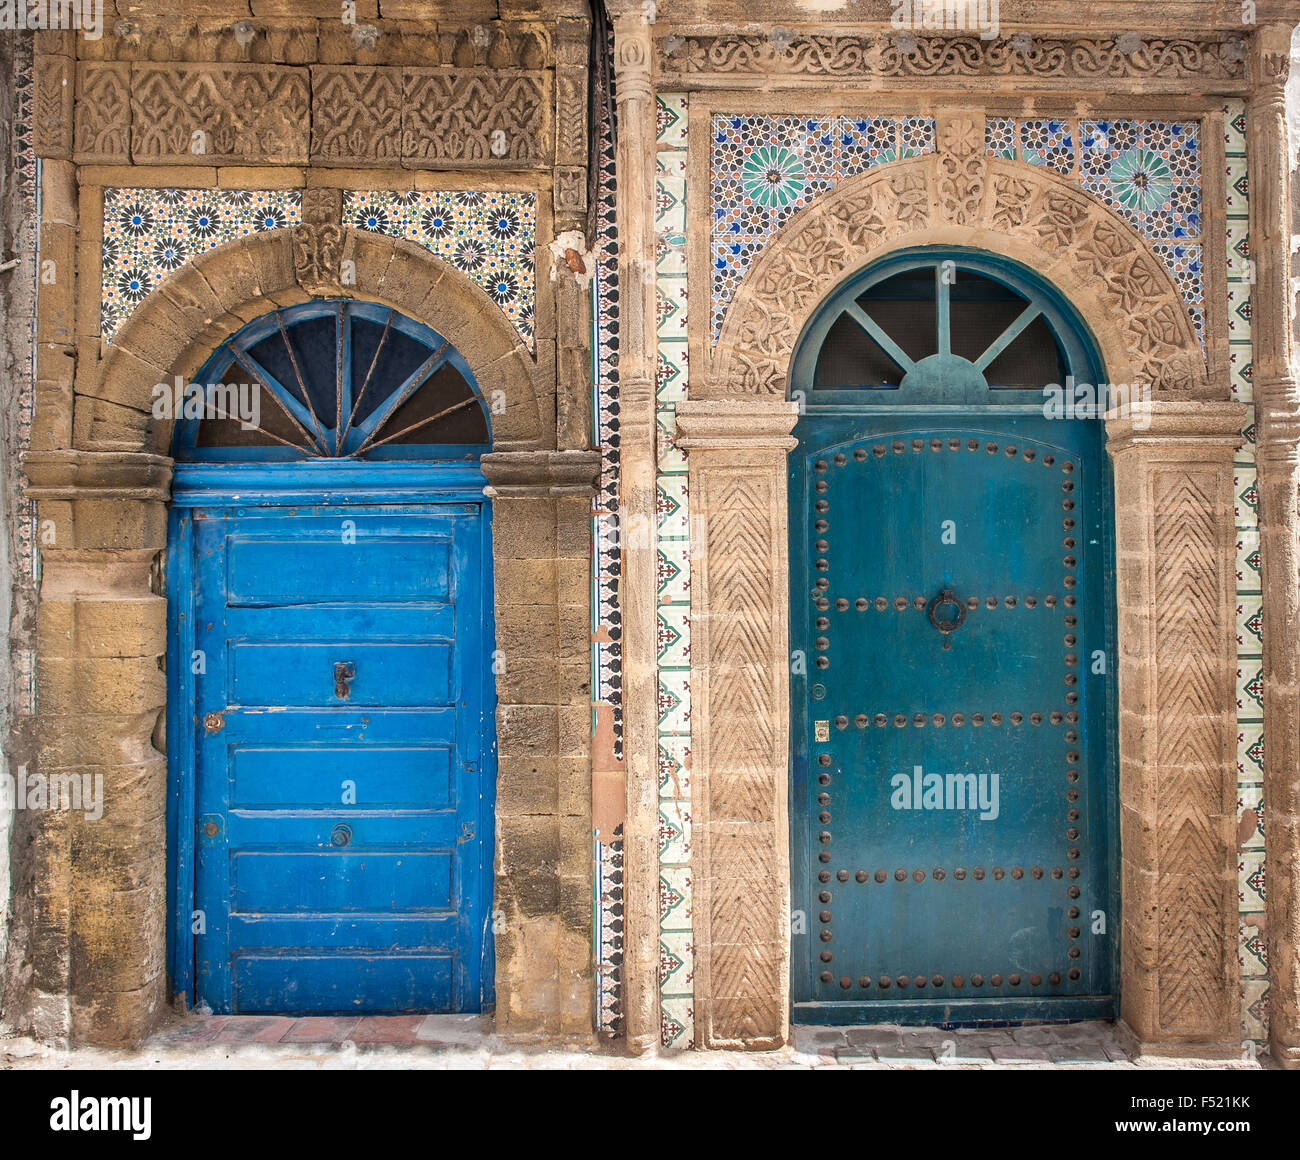 Ancient doors, Essaouira, Morocco - Stock Image - Antique Moroccan Doors Stock Photos & Antique Moroccan Doors Stock